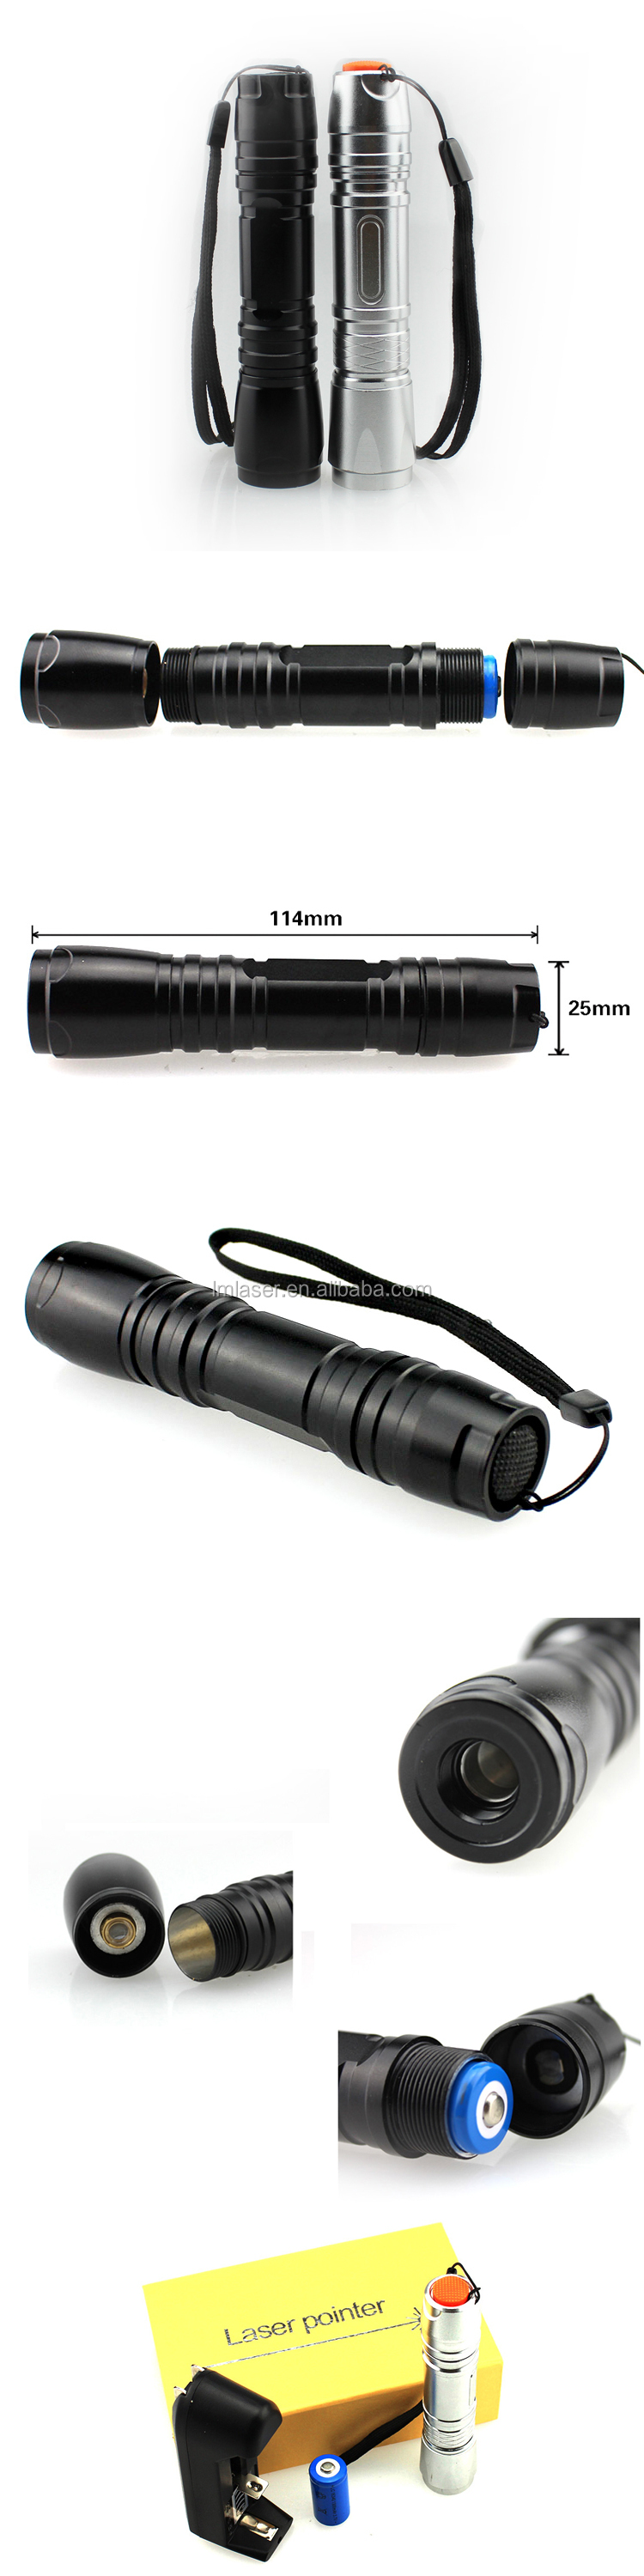 650nm red laser pointer 200mw waterproof focused